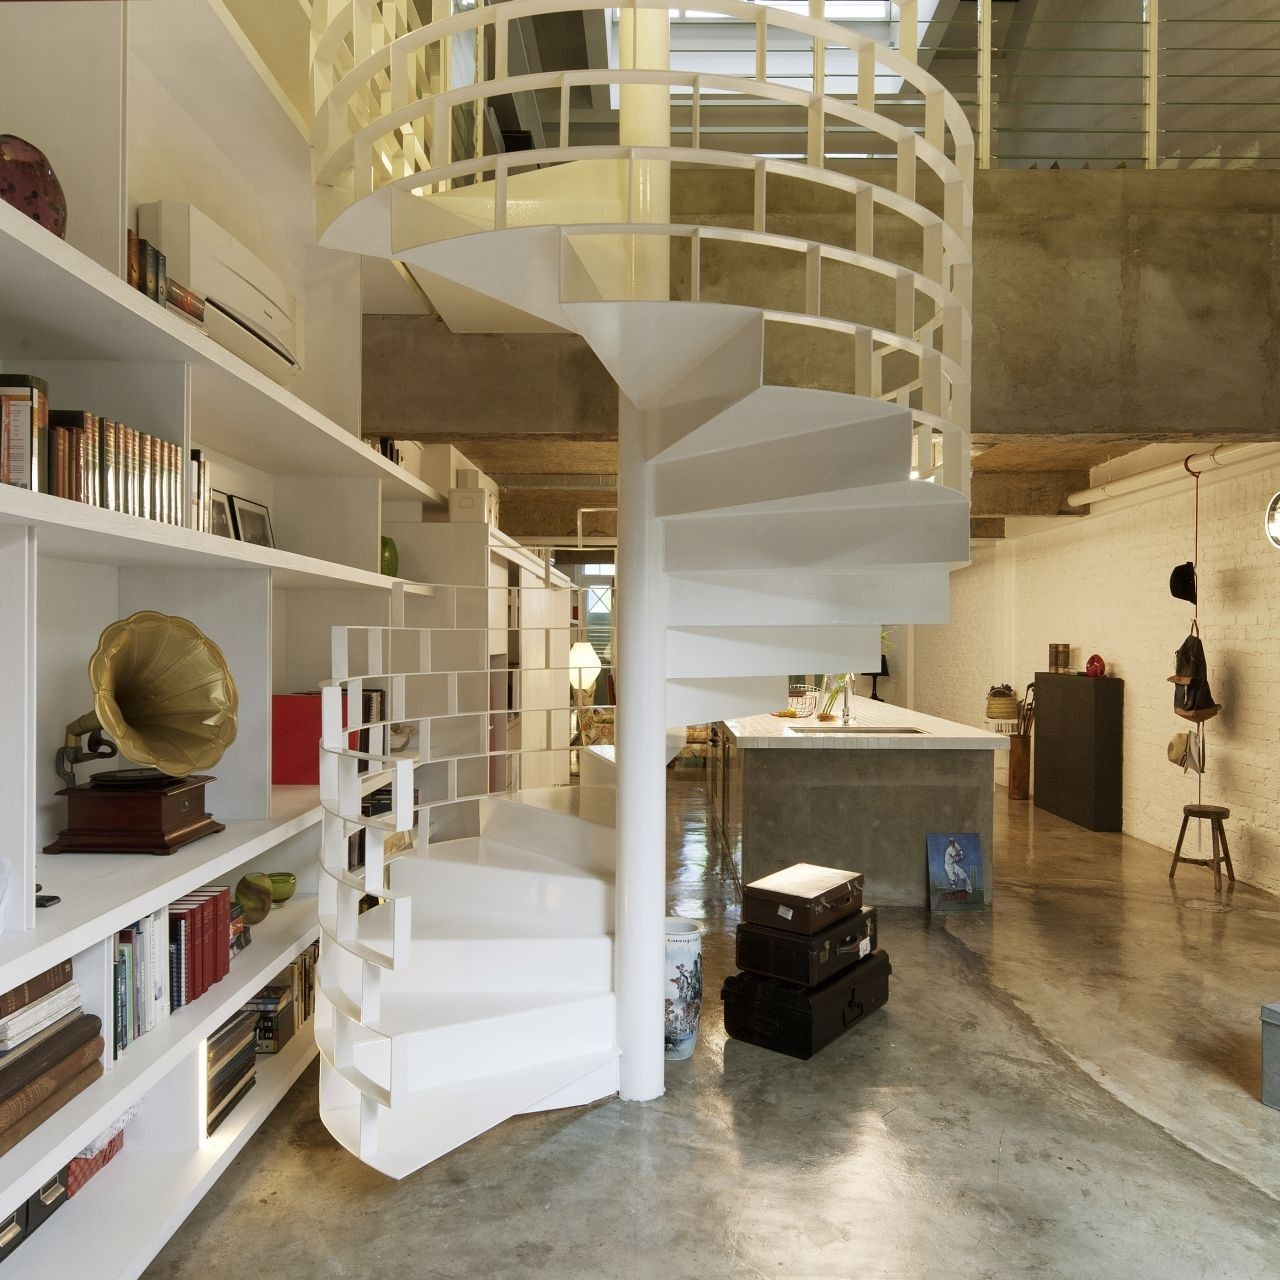 20 Of The Most Beautiful Spiral Staircase Designs Ever | Semi Spiral Staircase Design | Handrail | Inside | Semi Circular | Elegant | Residential Library